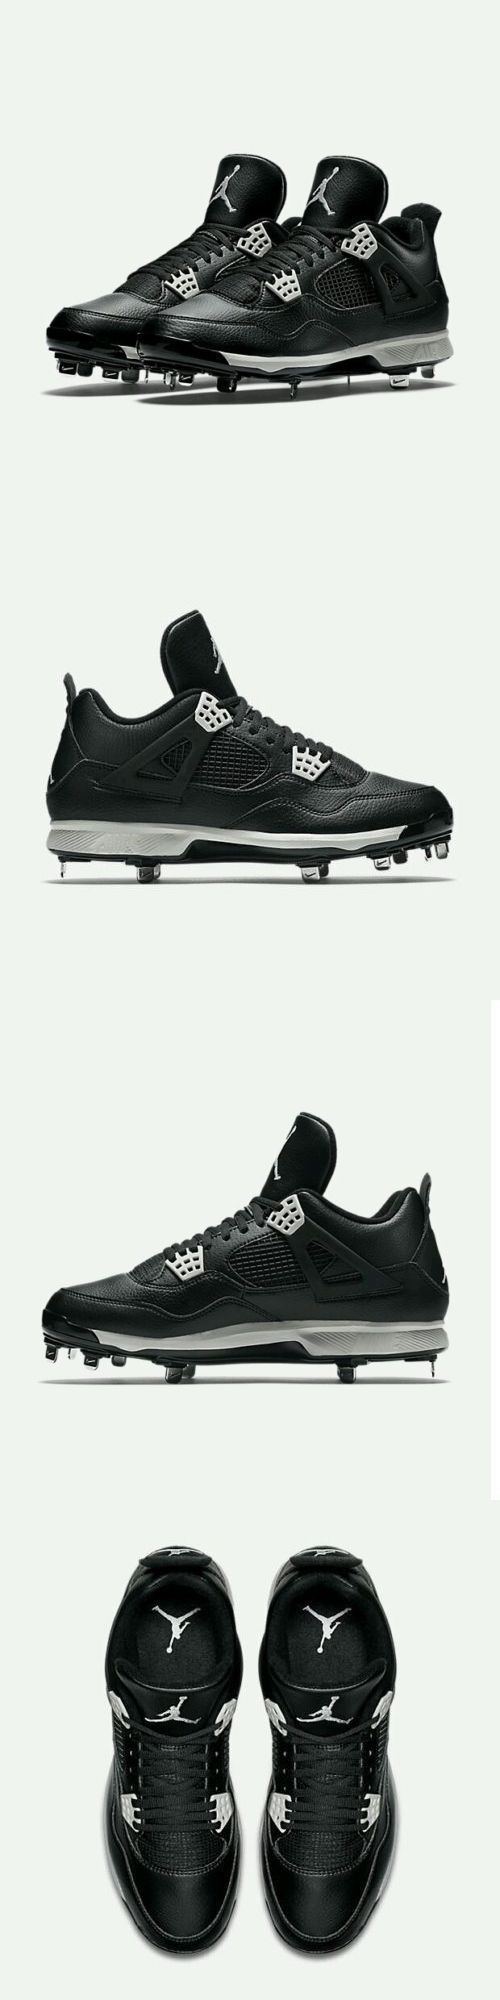 Mens 159059: Nike Air Jordan Iv 4 Retro Metal Baseball Cleats Black Grey Sz 9.5 (807710-010) -> BUY IT NOW ONLY: $54.99 on eBay!